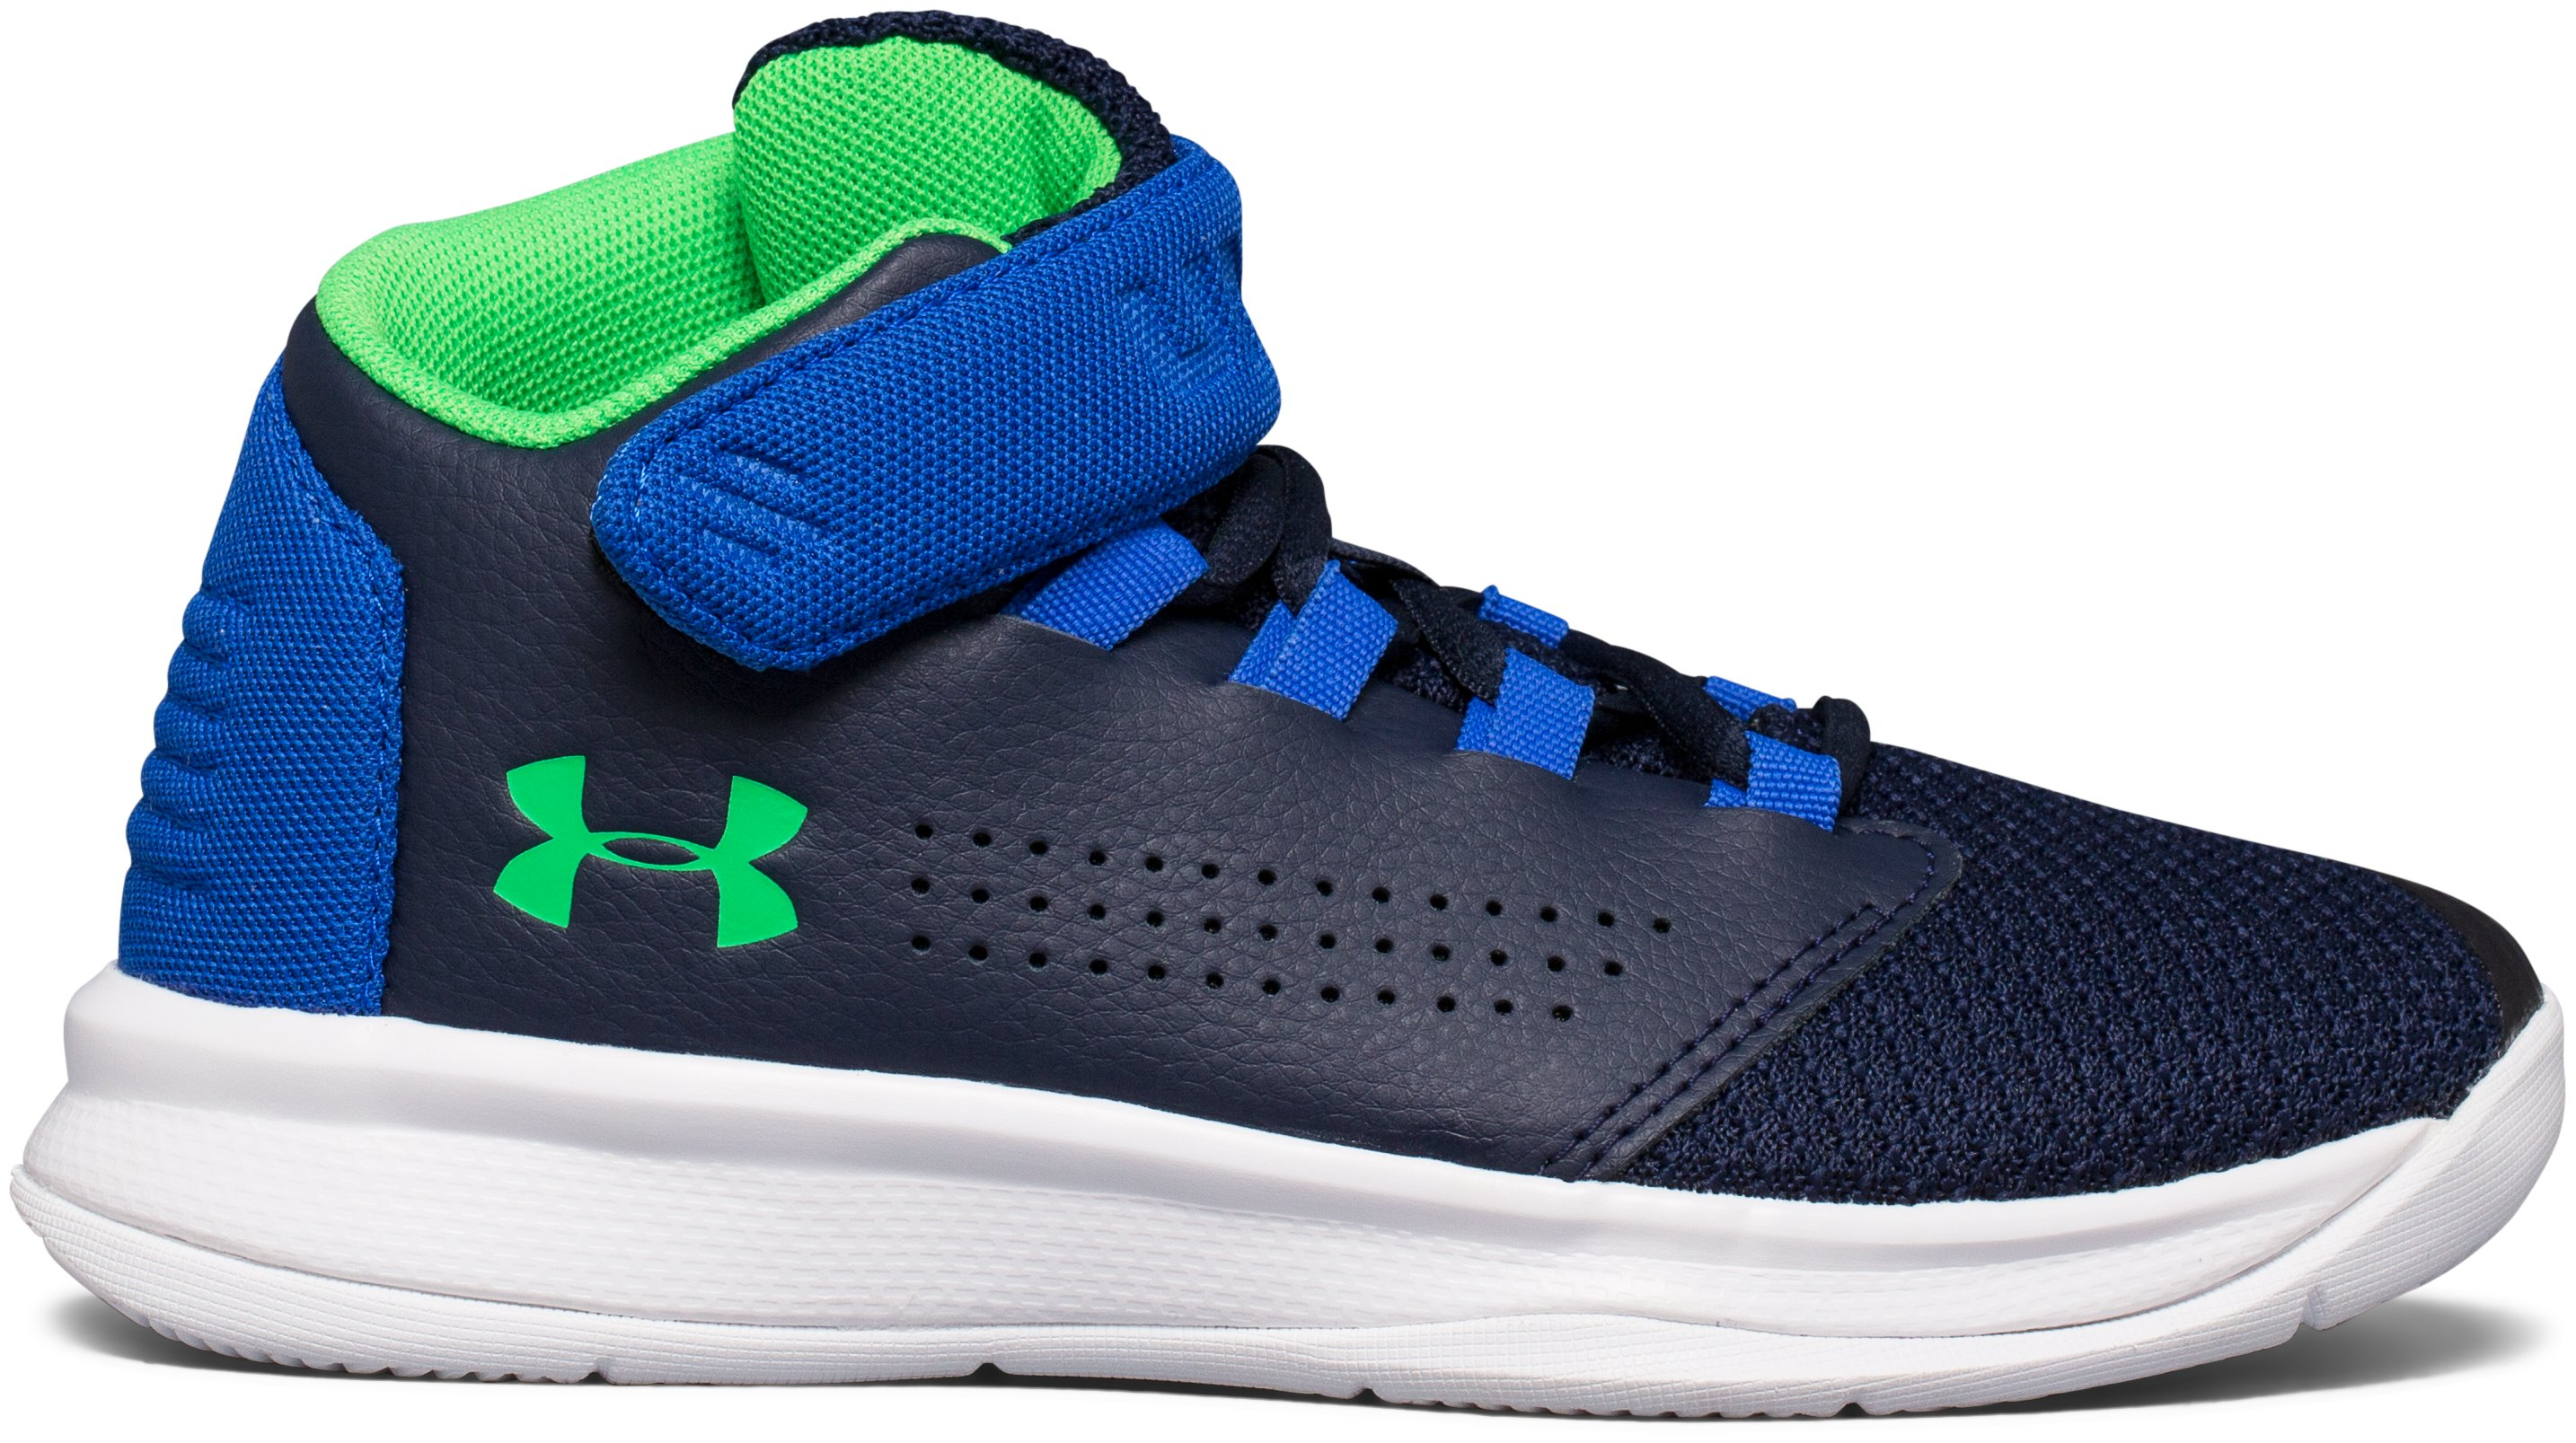 Boys' Pre-School UA Get B Zee Basketball Shoes, Midnight Navy